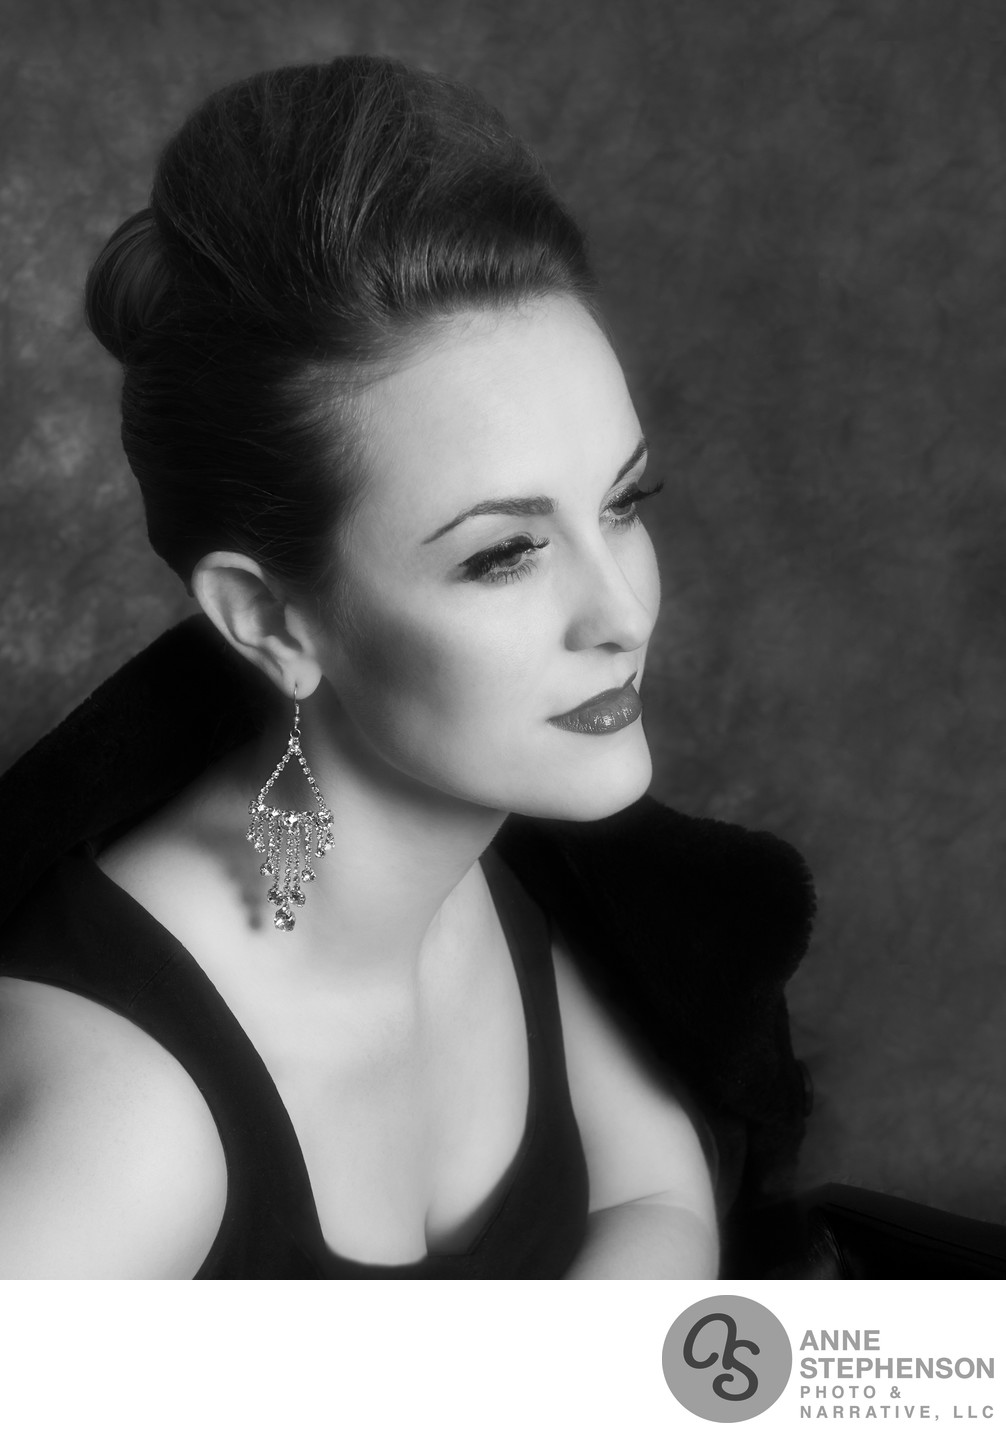 Hollywood Glamour Style Beauty Portrait in Black and White